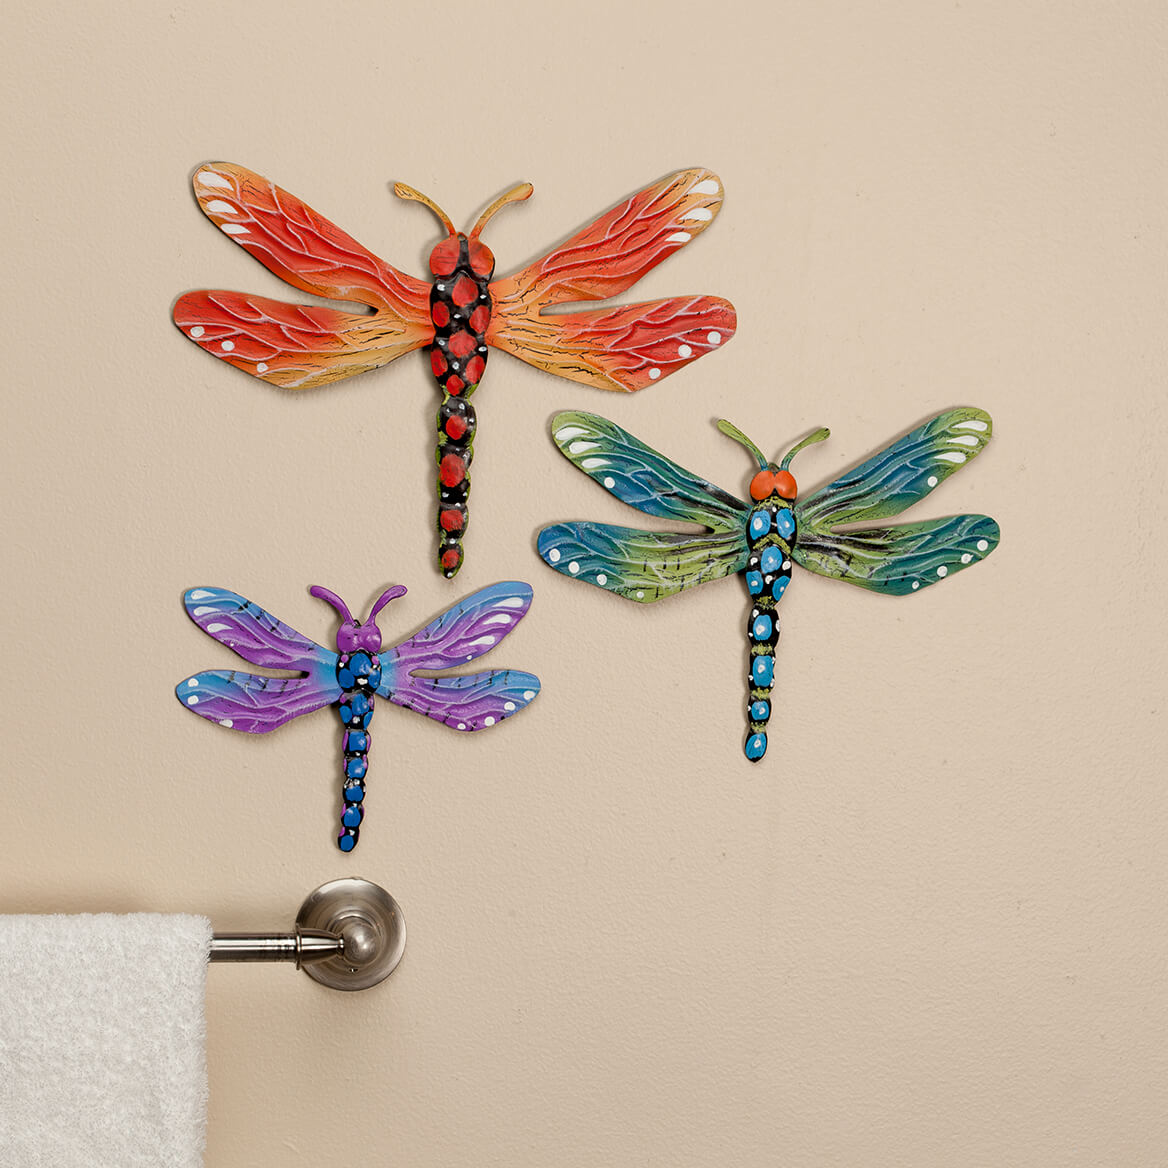 Metal Dragonfly Plaques Set of 3 by Fox River Creations™-365866